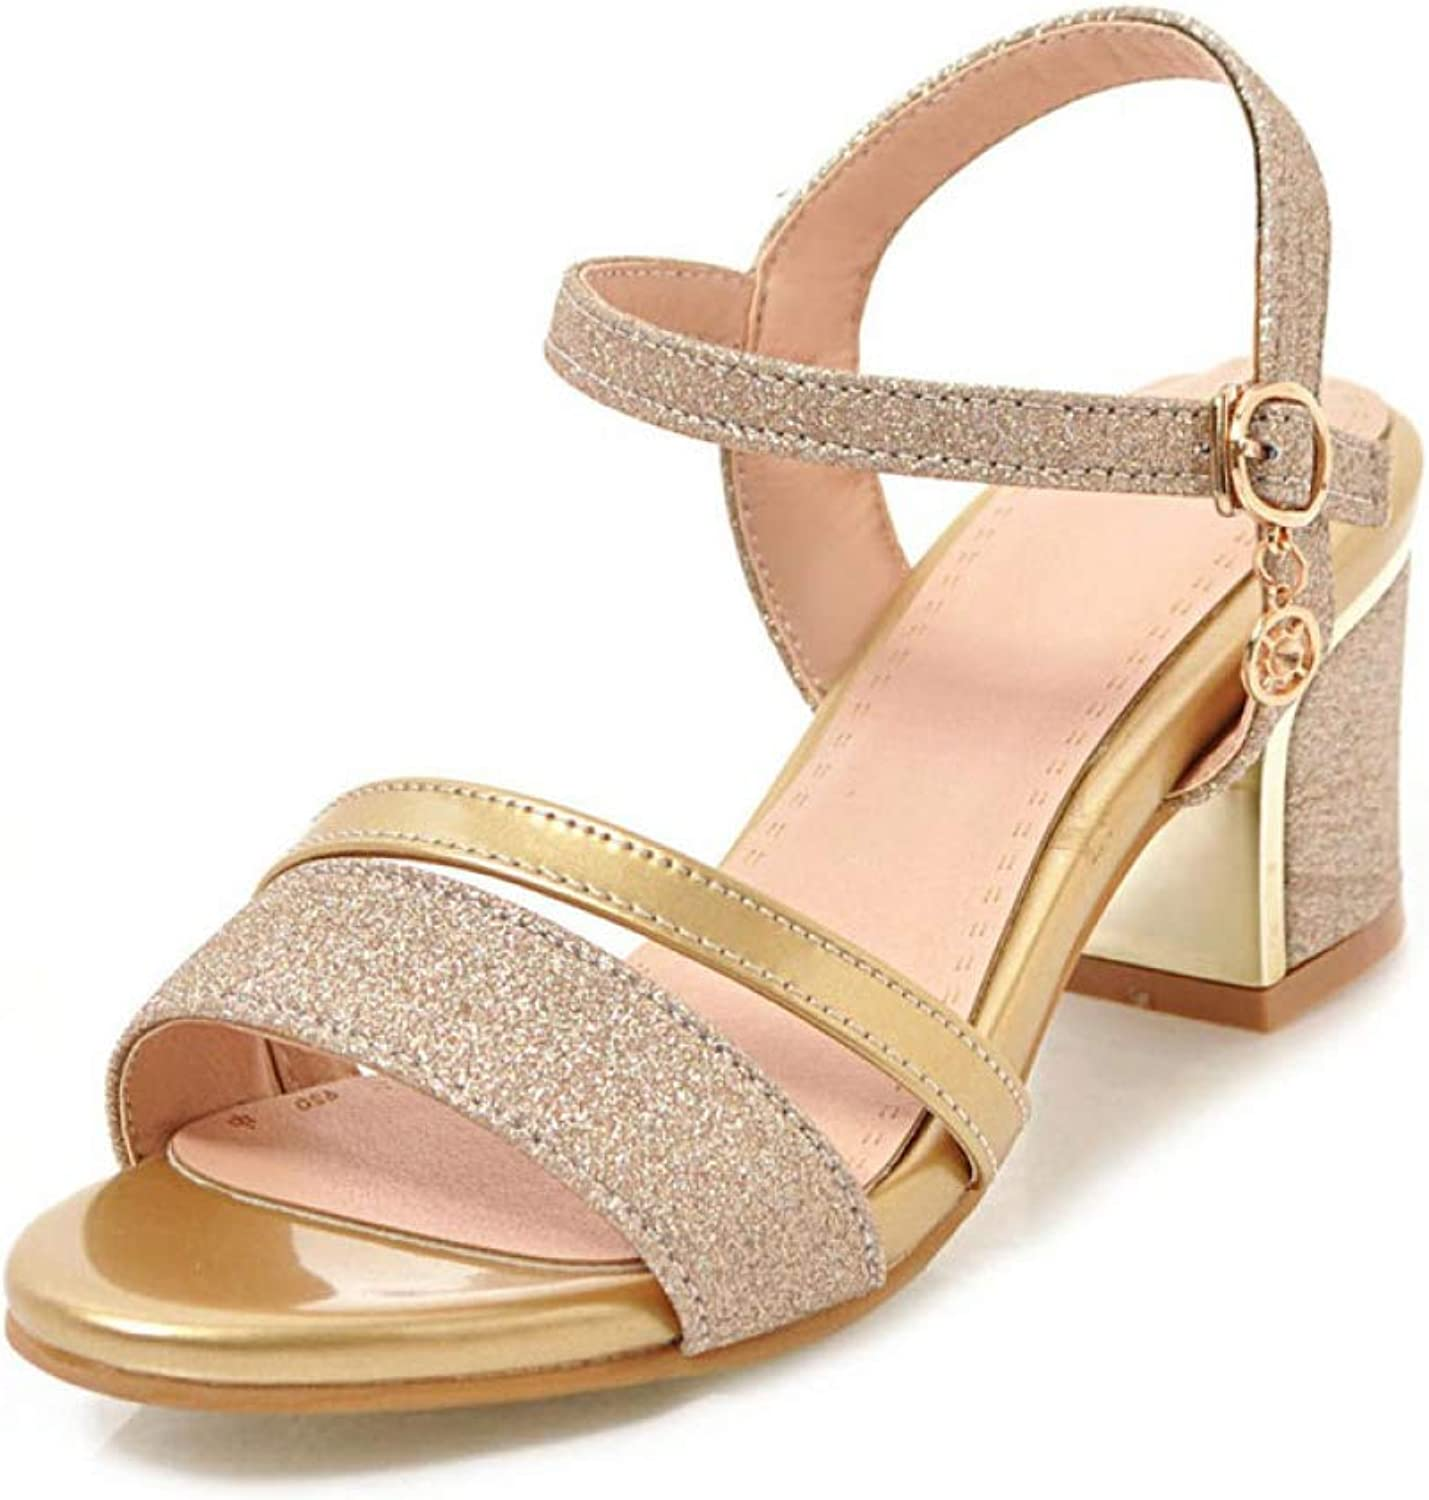 T-JULY Women's Sandal Ladies Open Toe Slingback Sequined Patent Leather Buckle High Heel Bling Party Dress shoes for Summer